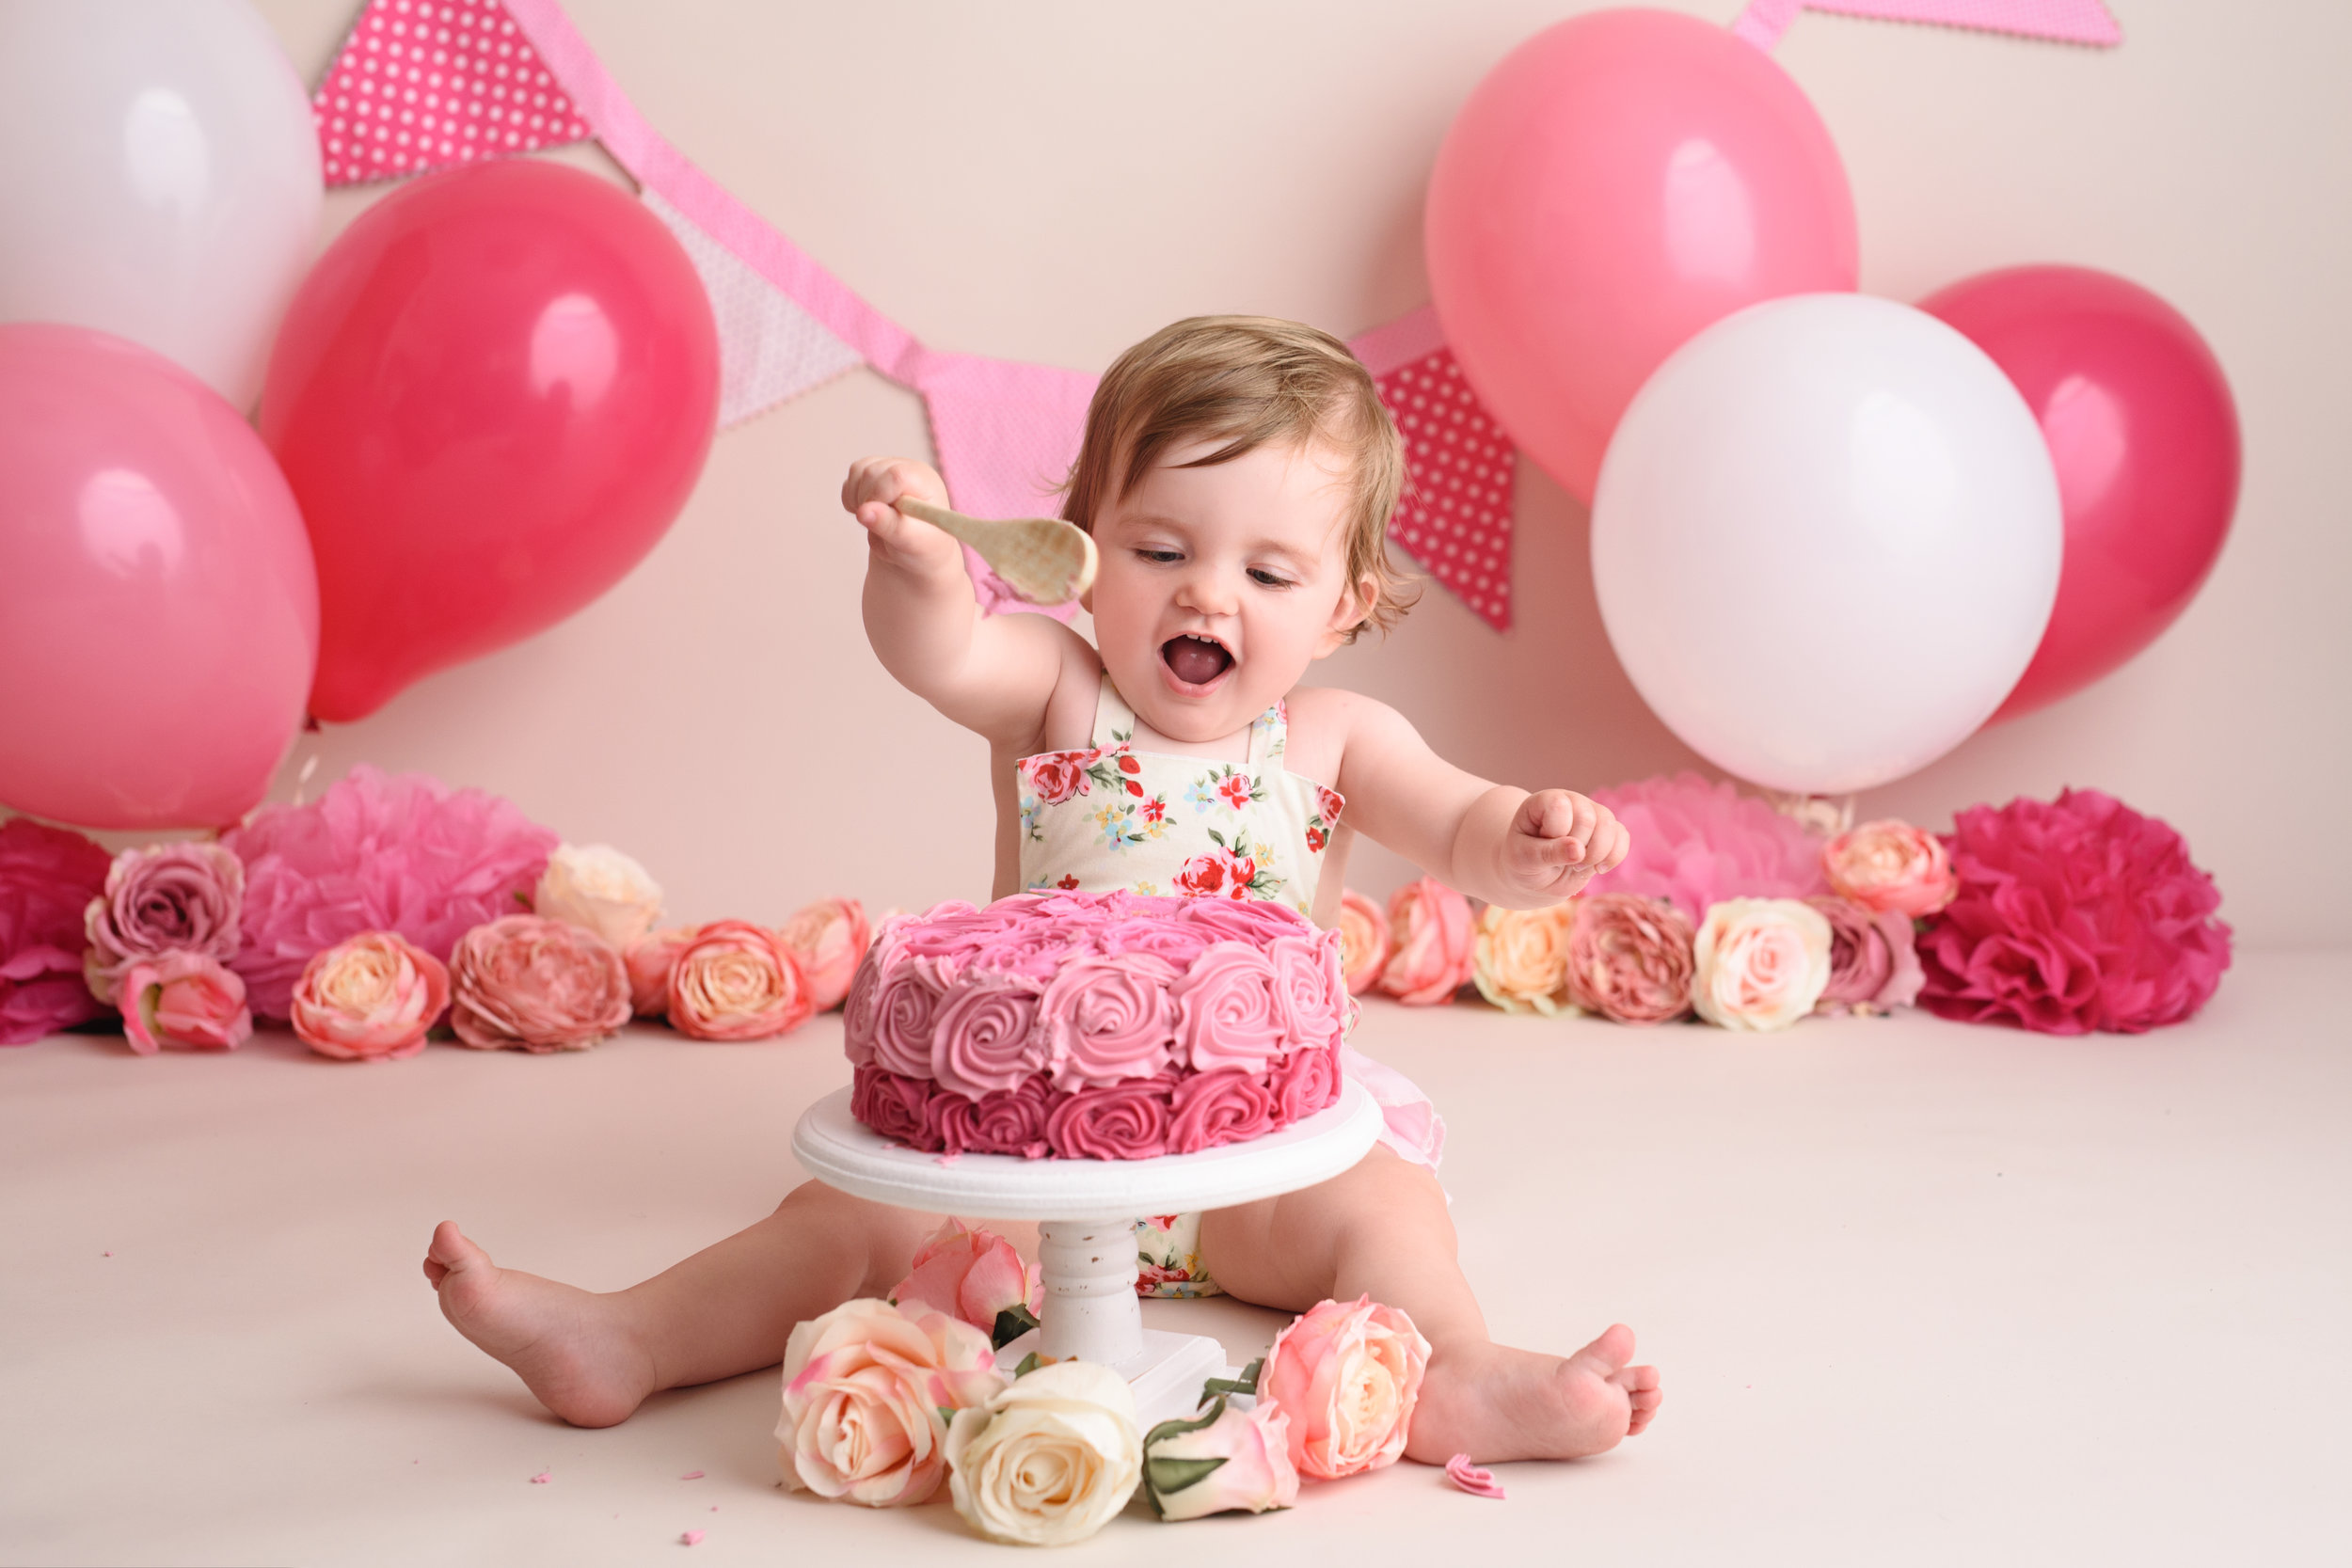 First Birthday Celebration Cake Smash Photographer based in Dorset